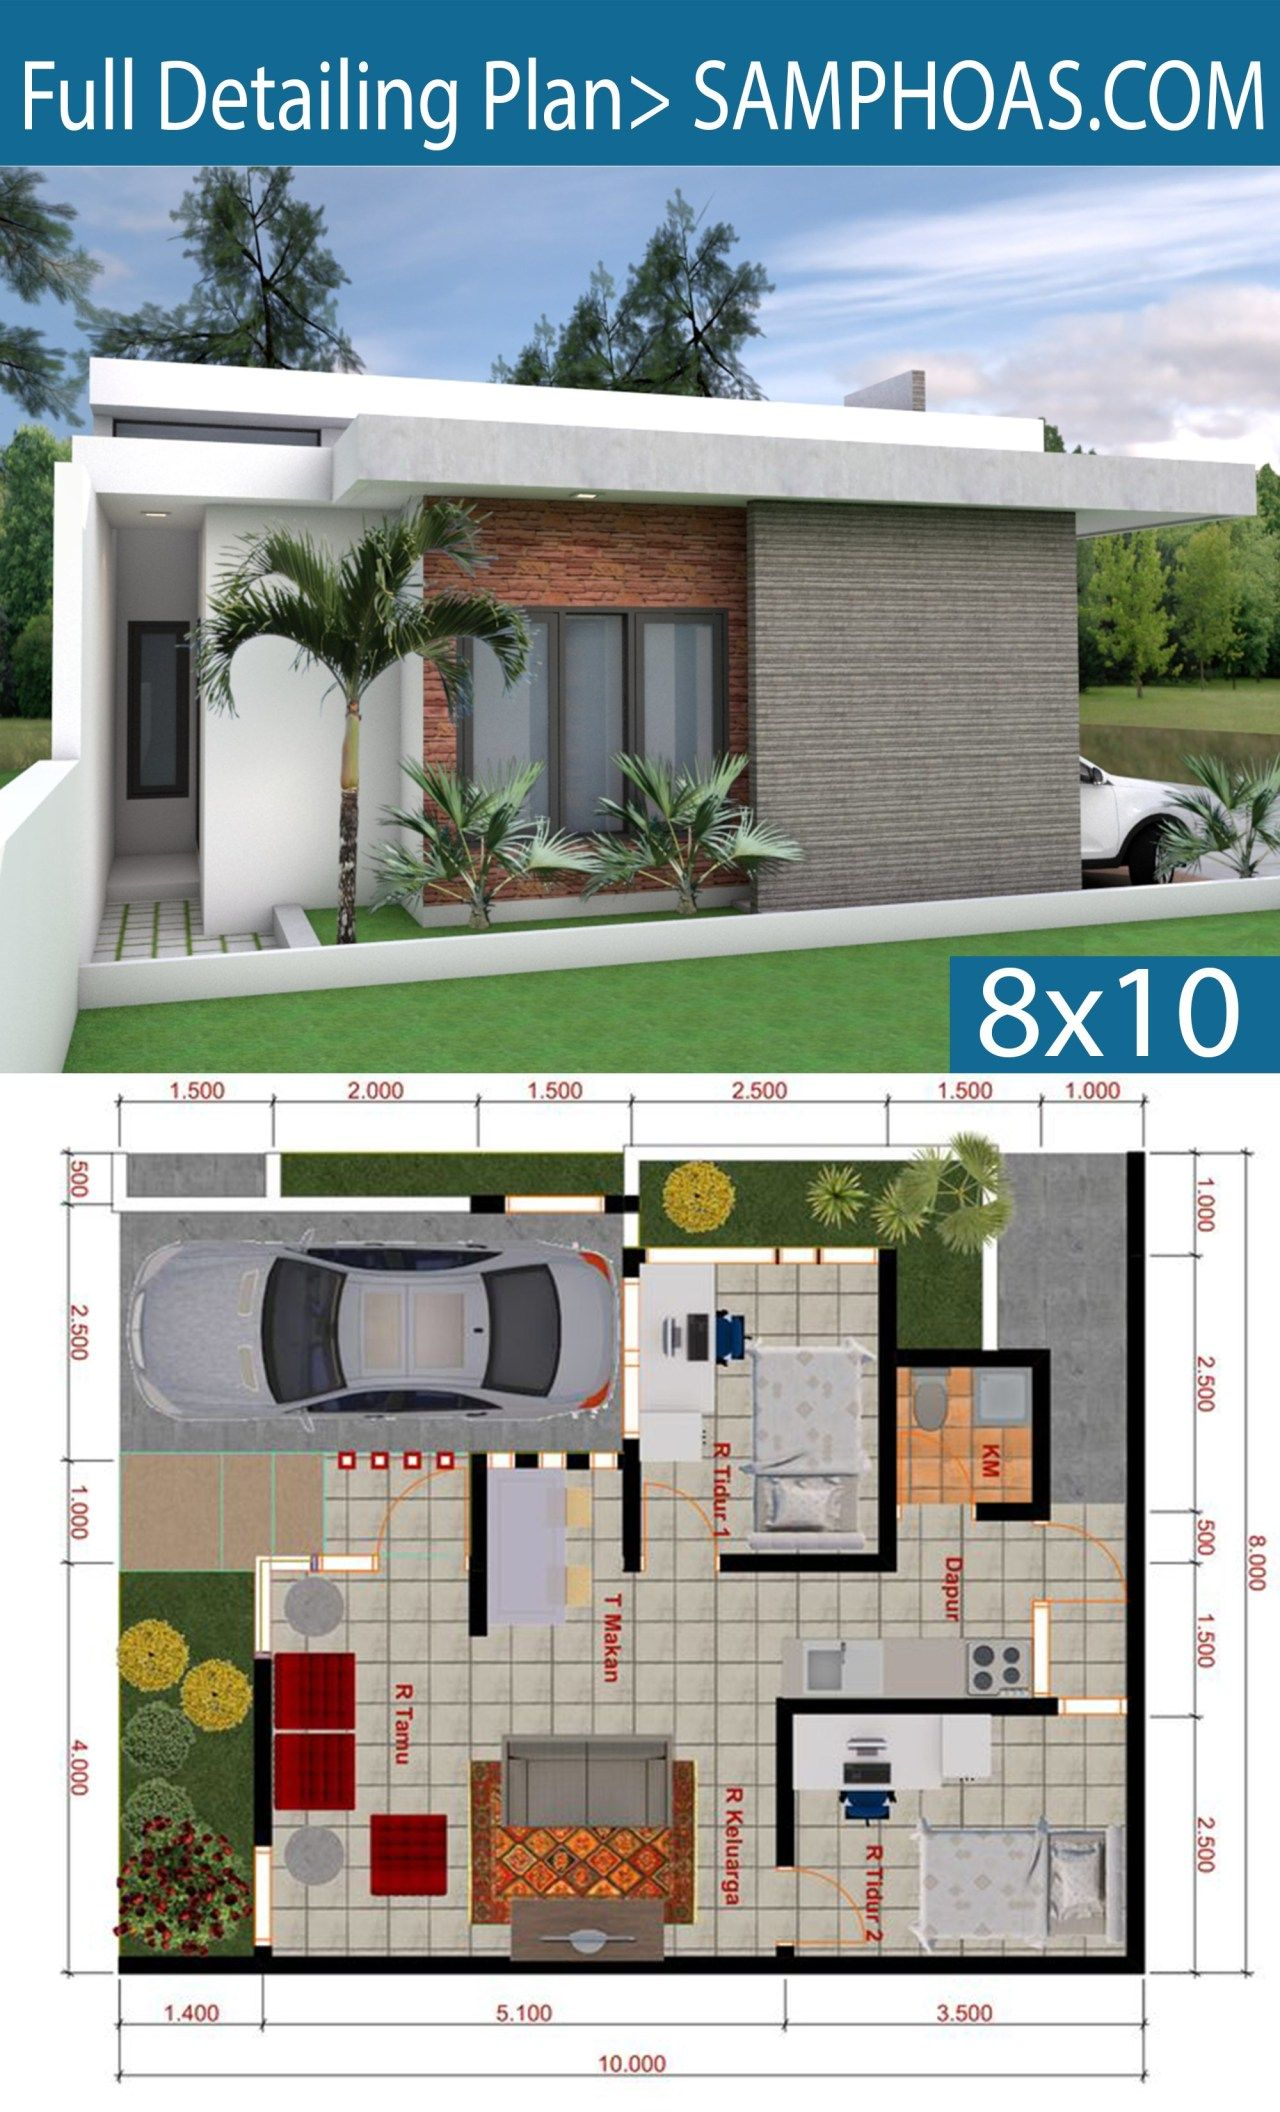 Sketchup House Modeling Idea From Photo 8x10m Samphoas Plan House Plans Mansion Small House Elevation Design Sims House Plans